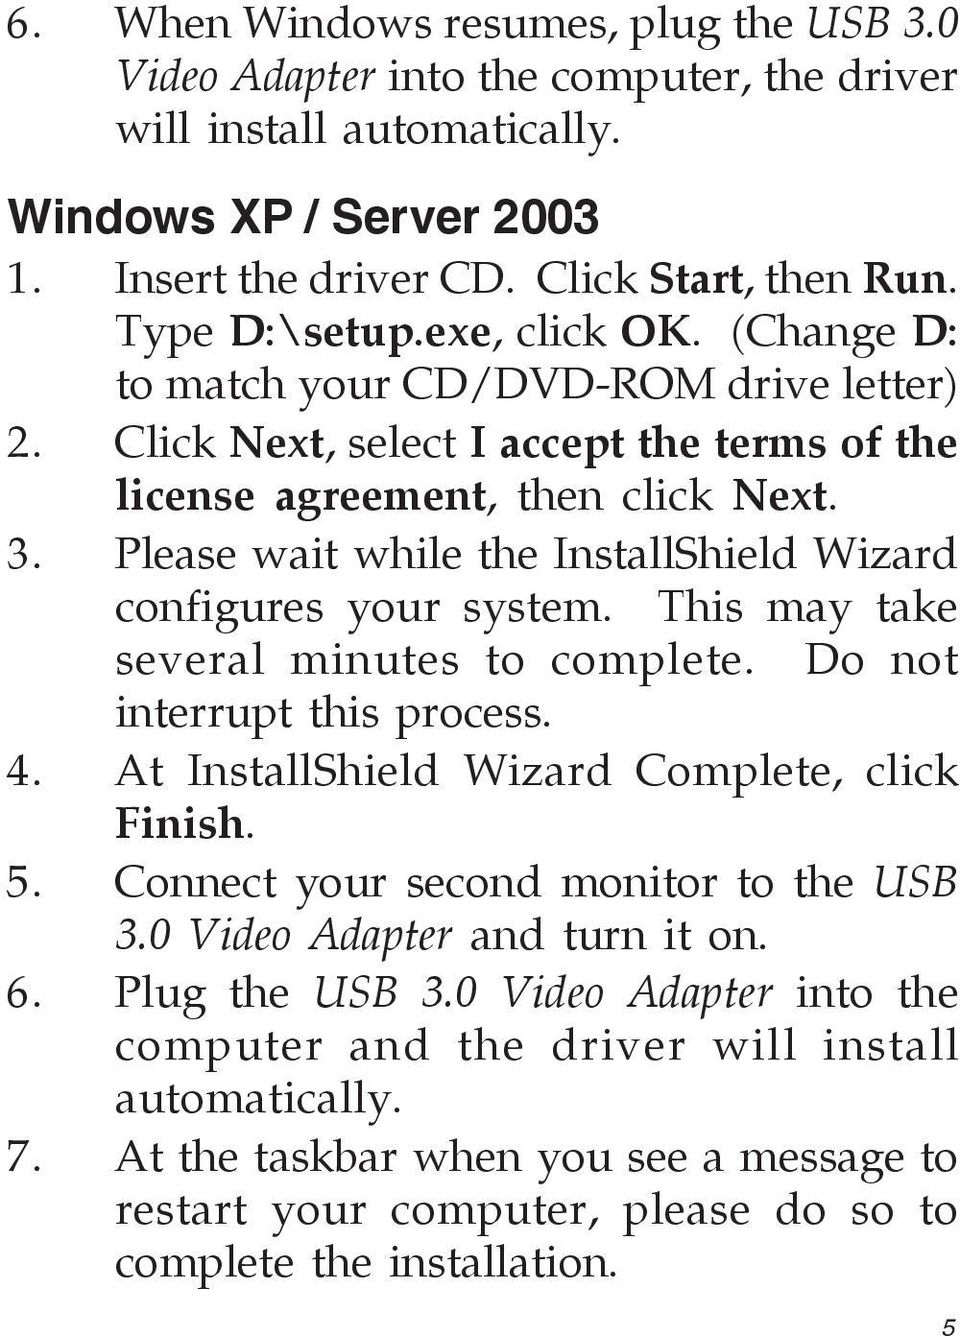 Please wait while the InstallShield Wizard configures your system. This may take several minutes to complete. Do not interrupt this process. 4. At InstallShield Wizard Complete, click Finish. 5.